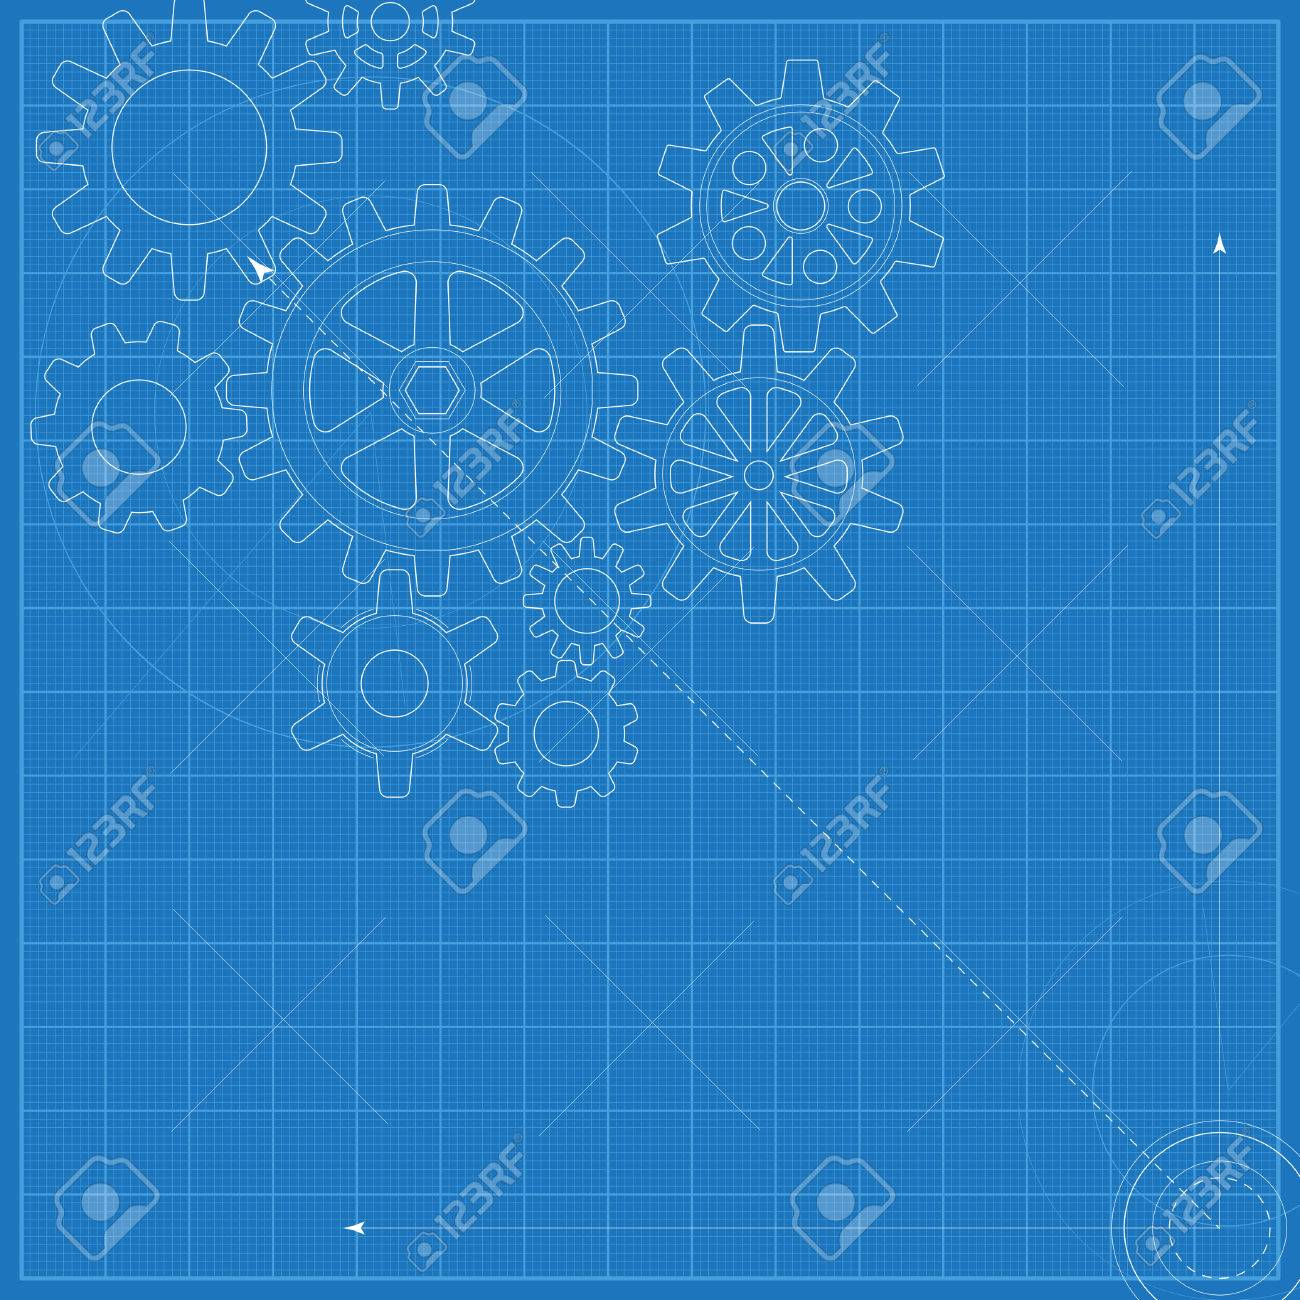 Decorative blueprint with schematic gears on graph paper stock photo decorative blueprint with schematic gears on graph paper stock photo 45327806 malvernweather Choice Image